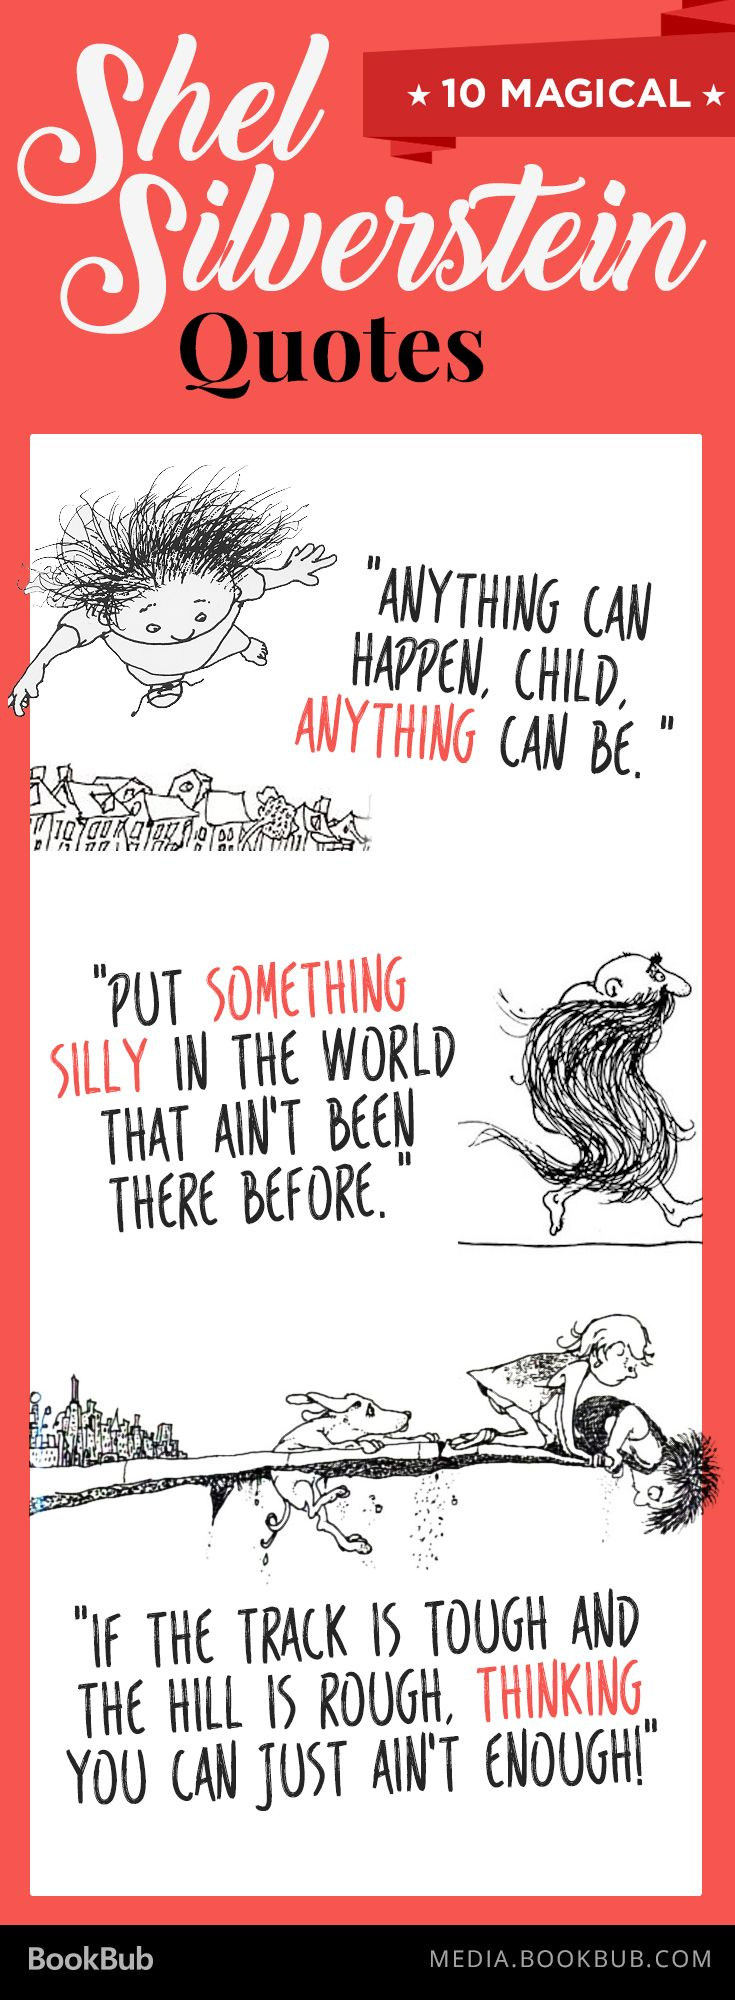 10 inspirational Shel Silverstein quotes for children and adults.